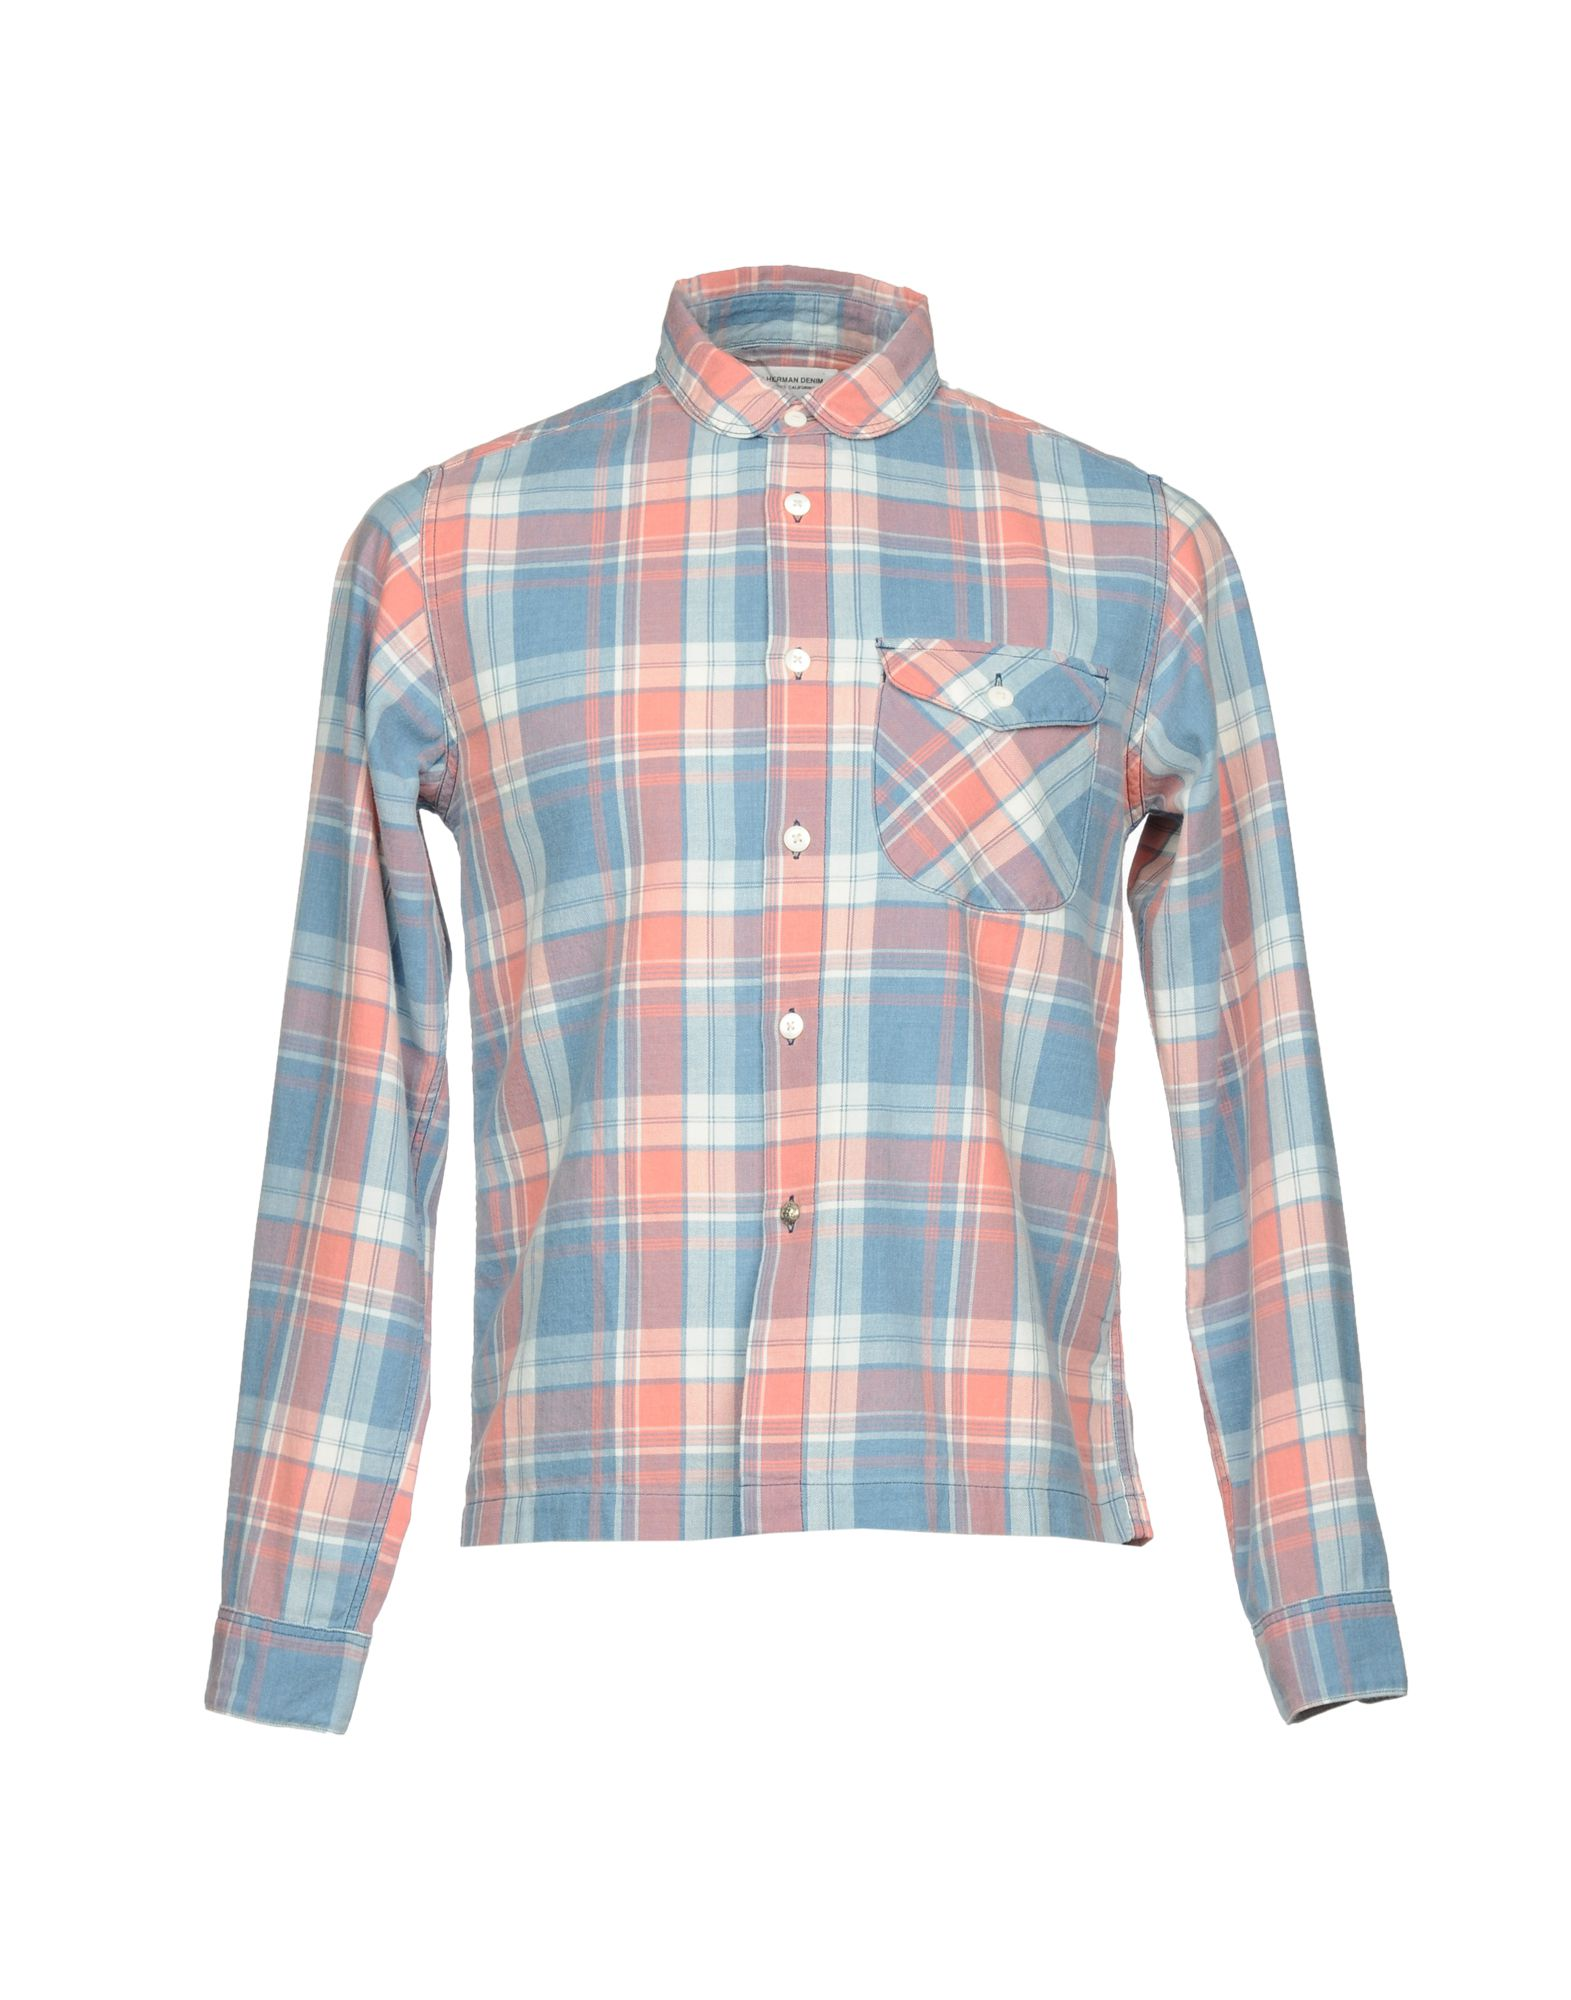 RON HERMAN Checked Shirt in Pastel Blue